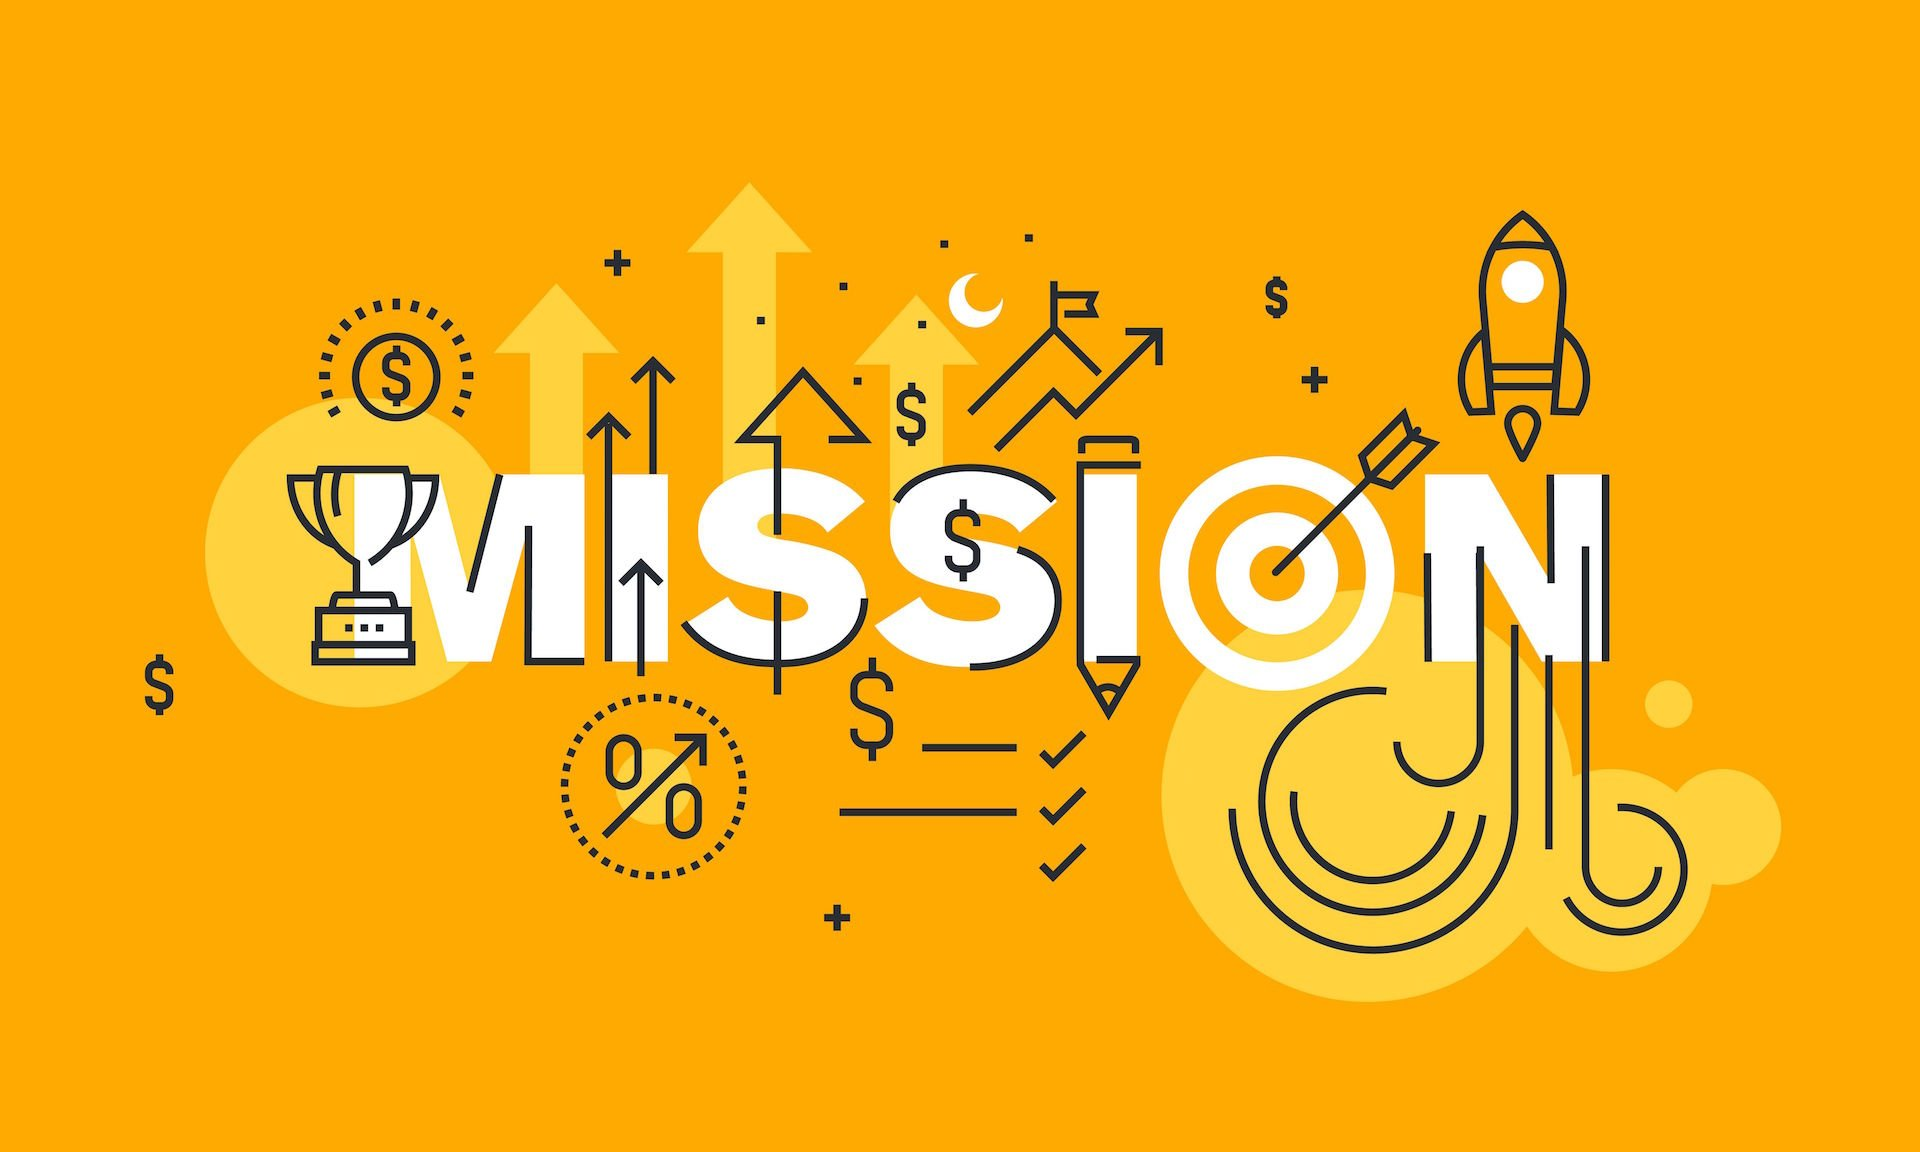 Content Marketing Mission Statements: How to Find Your Editorial Focus